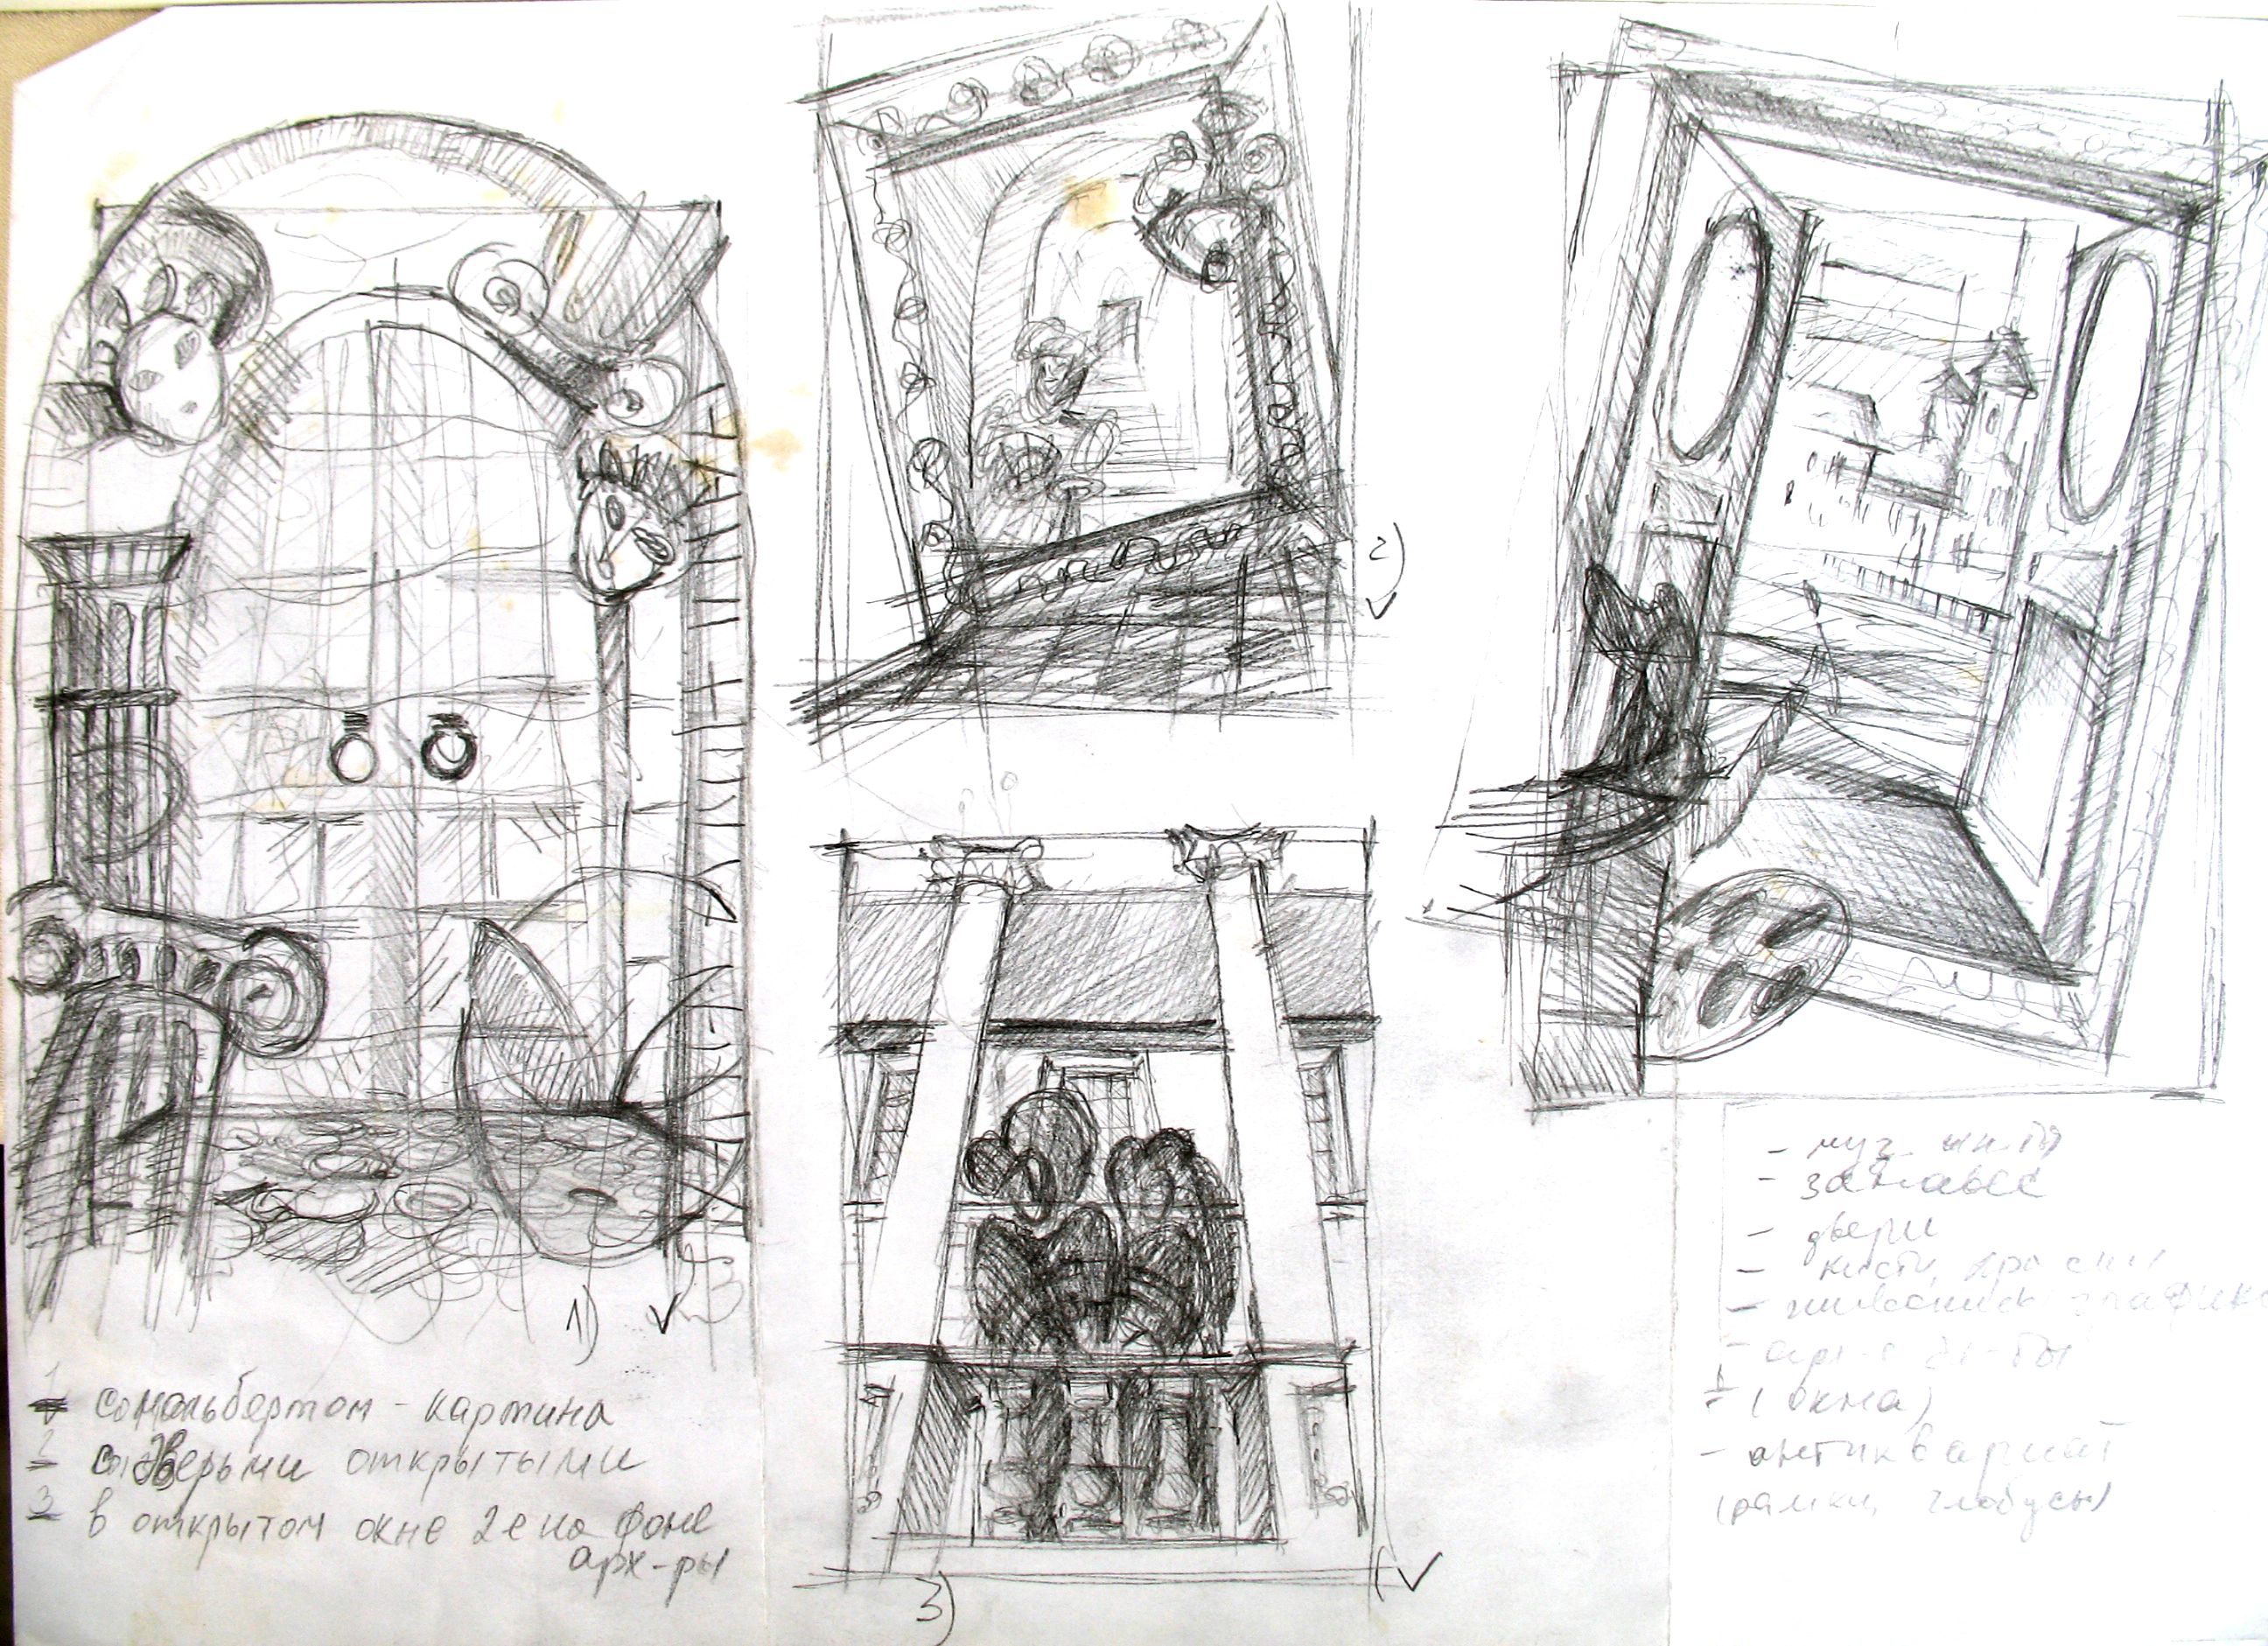 hight resolution of sketches for art collages for puppet theater sketches sketching pencil painted drawing 3handdrawing theater